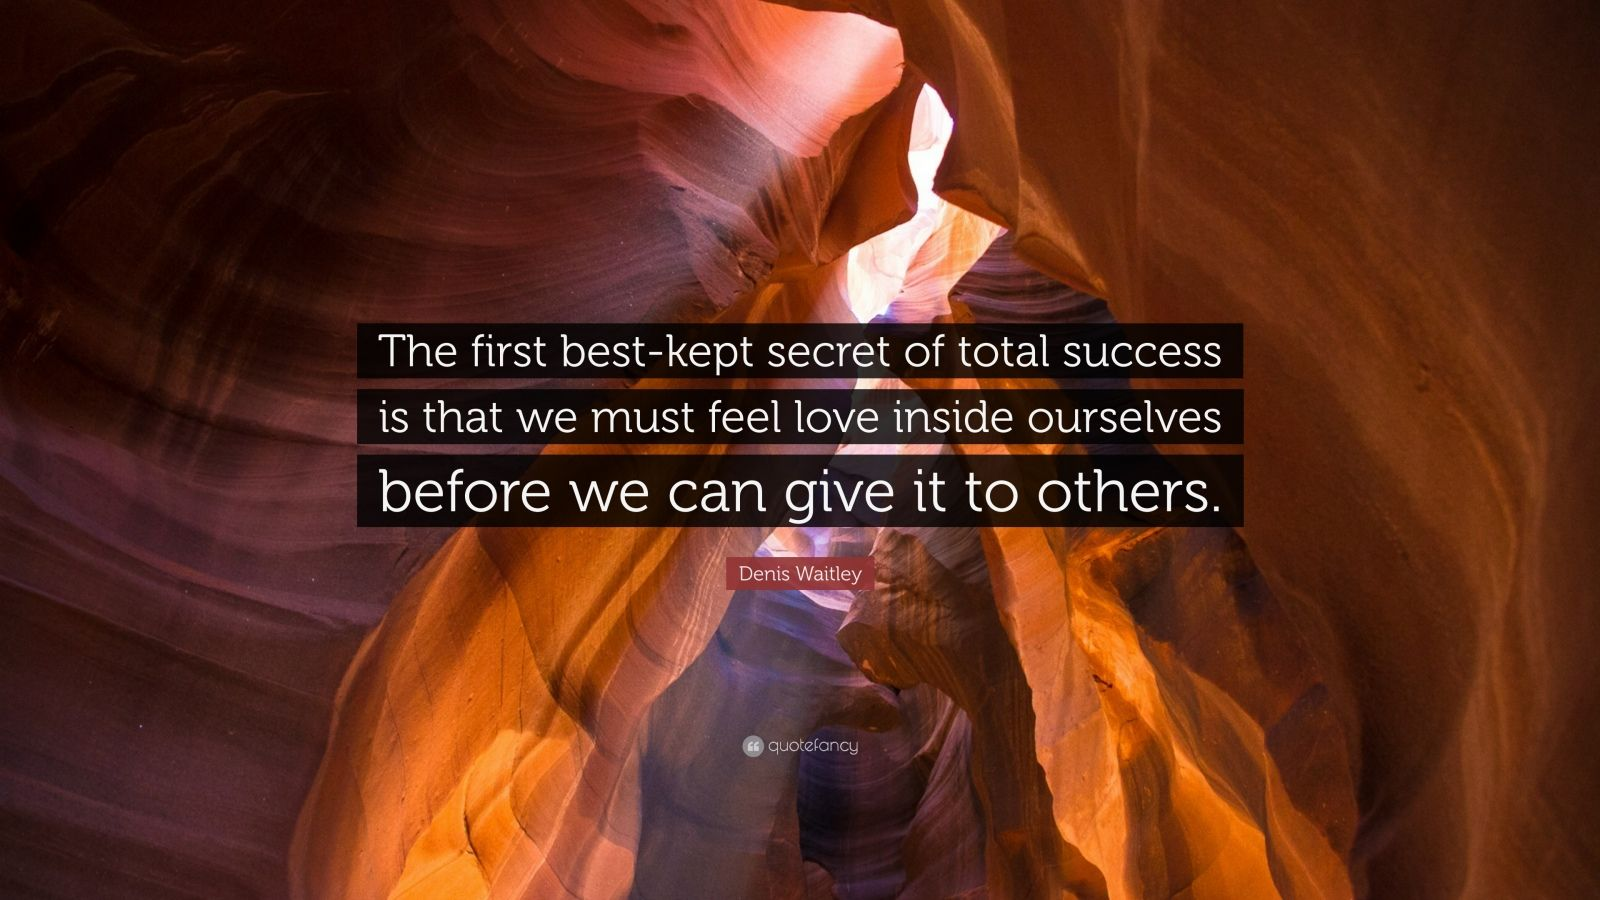 """Denis Waitley Quote: """"The first best-kept secret of total success is that we must feel love inside ourselves before we can give it to others."""""""